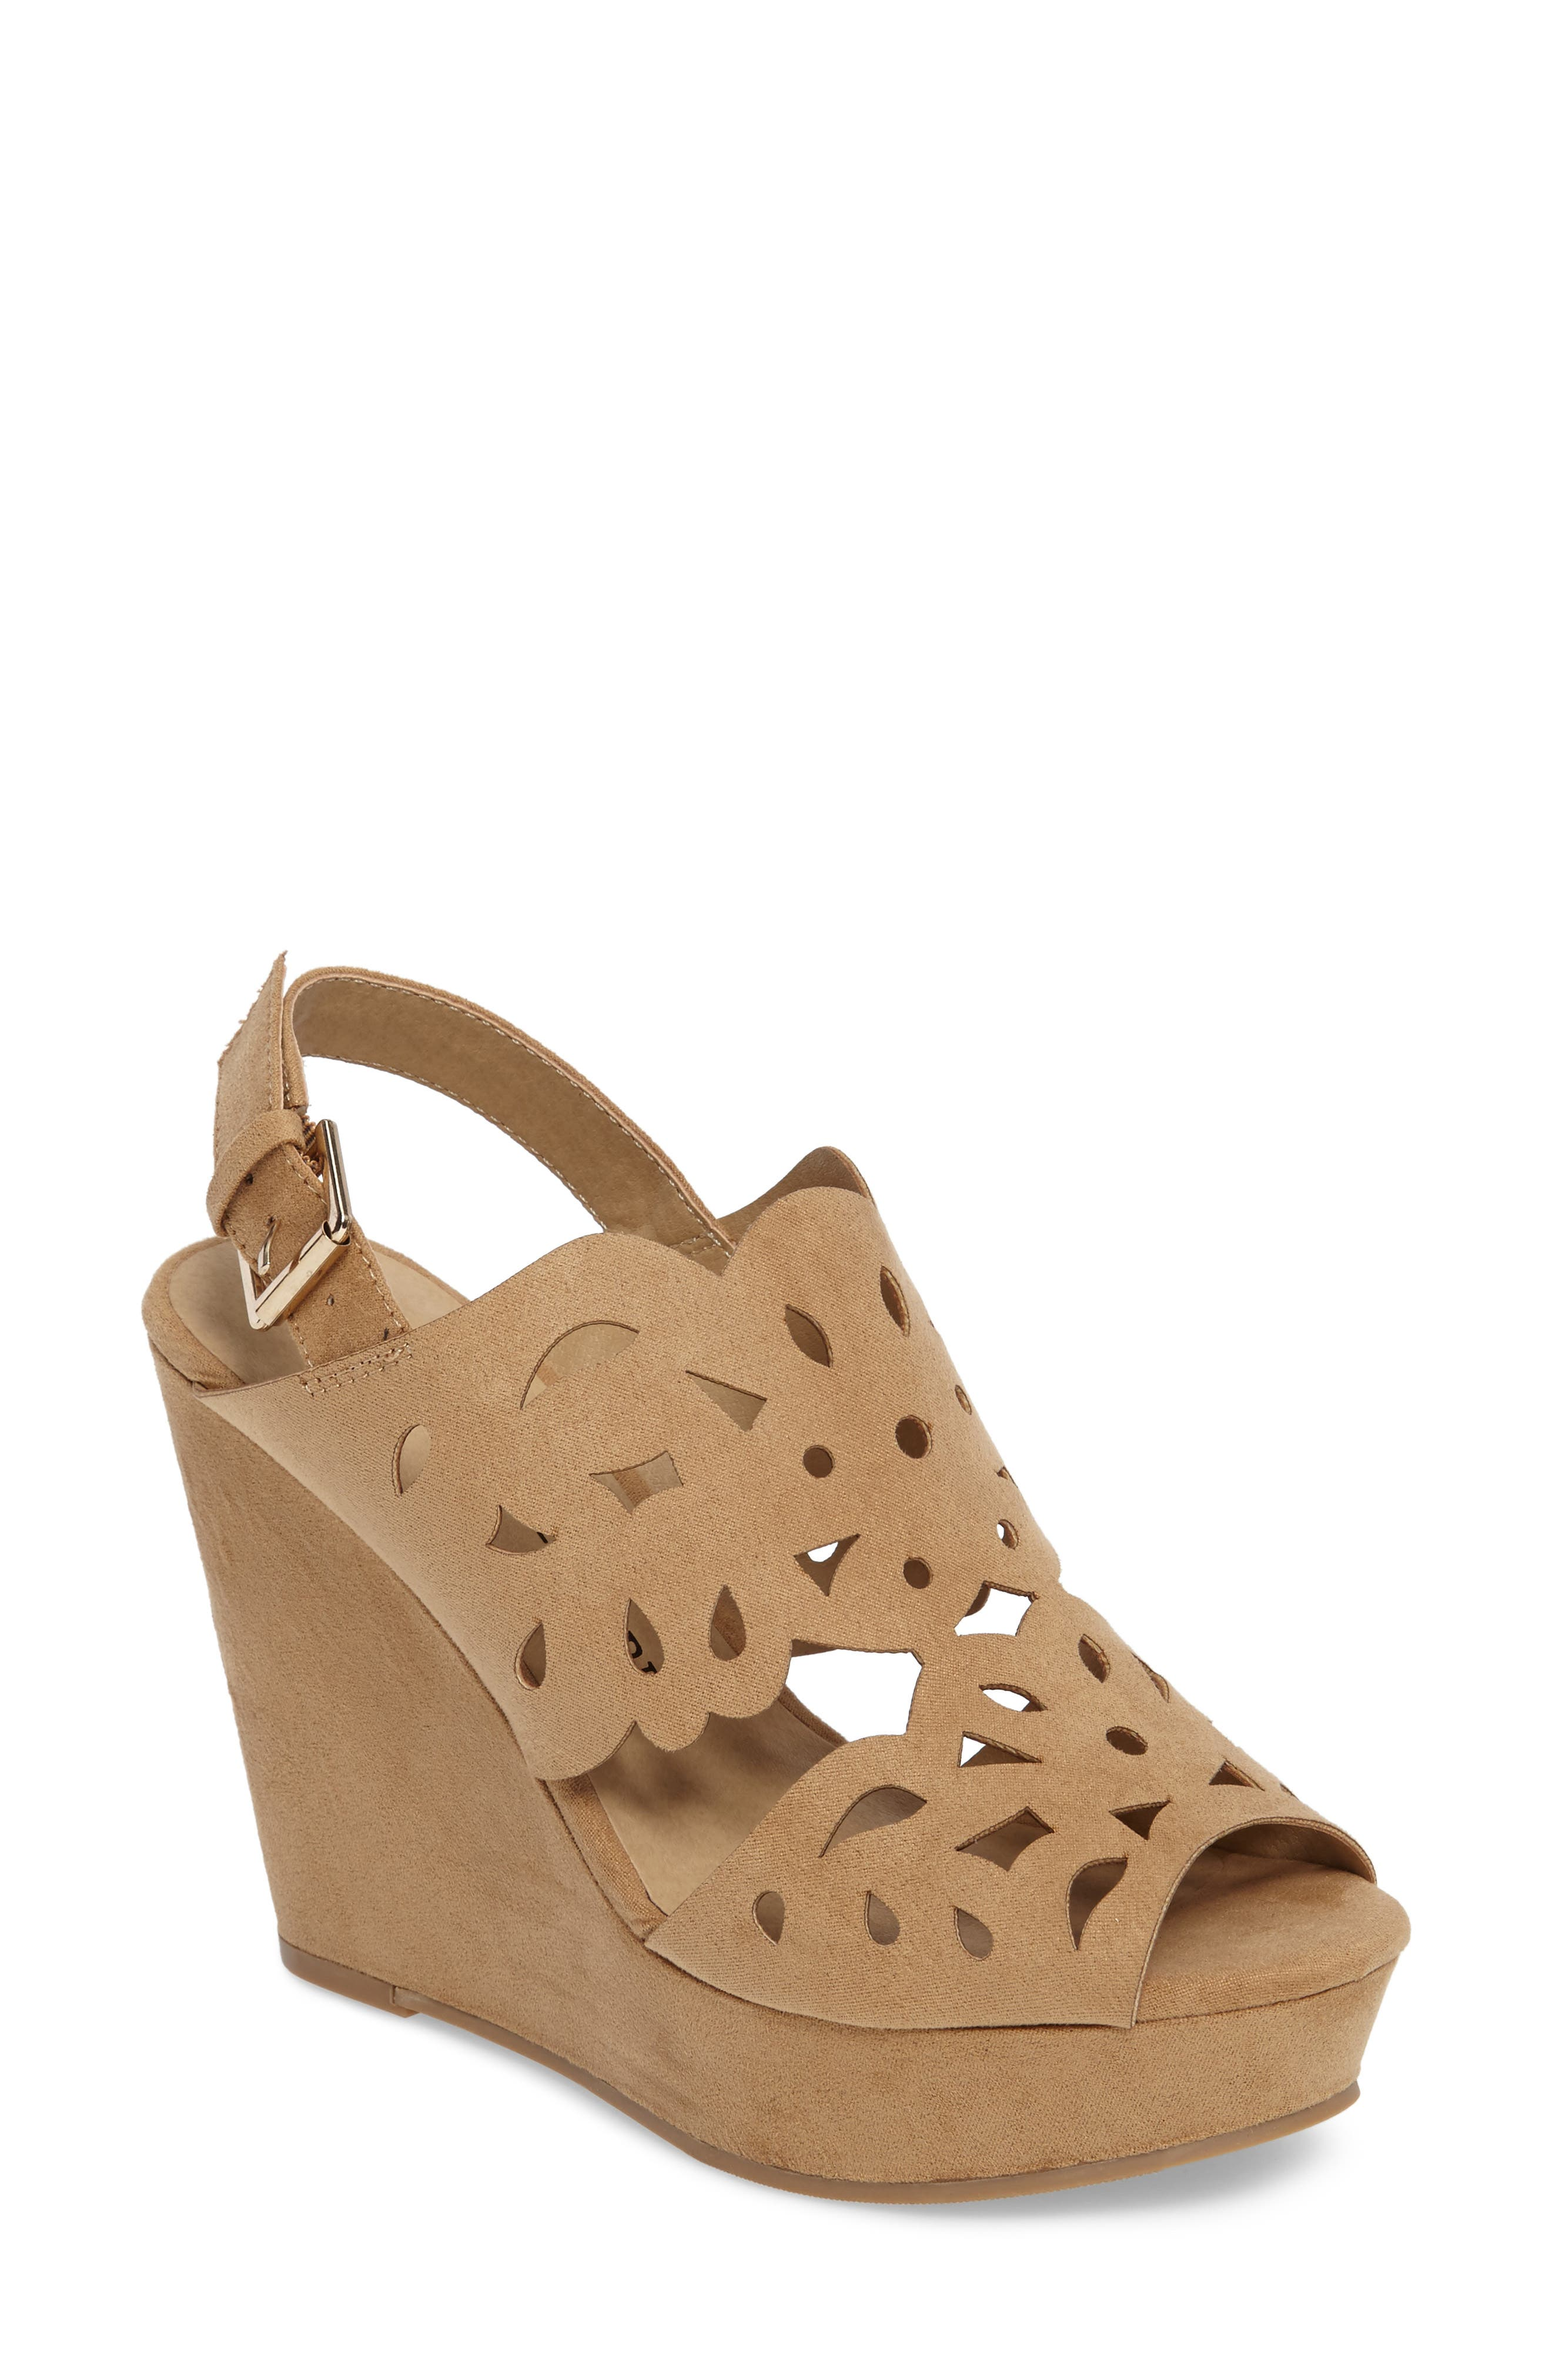 Main Image - Chinese Laundry In Love Wedge Sandal (Women)